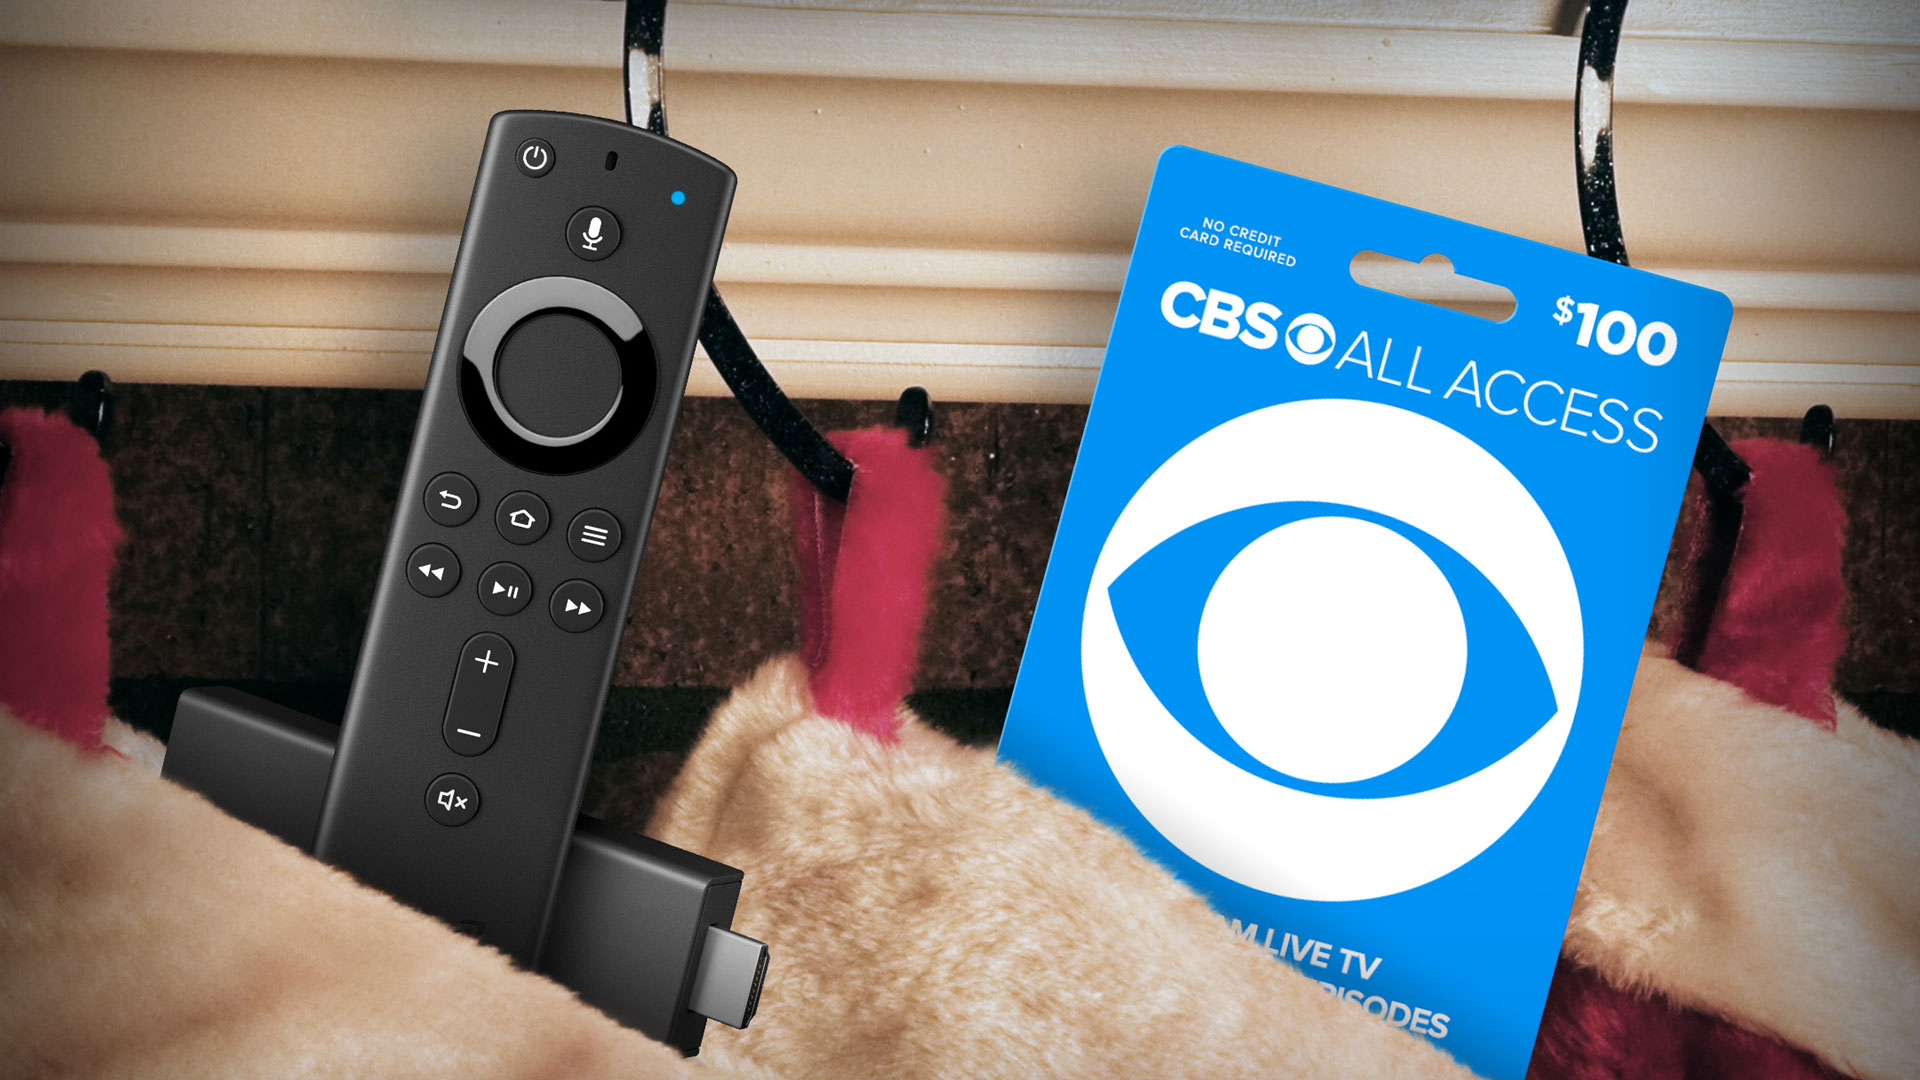 Here's How To Enter The CBS All Access Holiday Sweepstakes